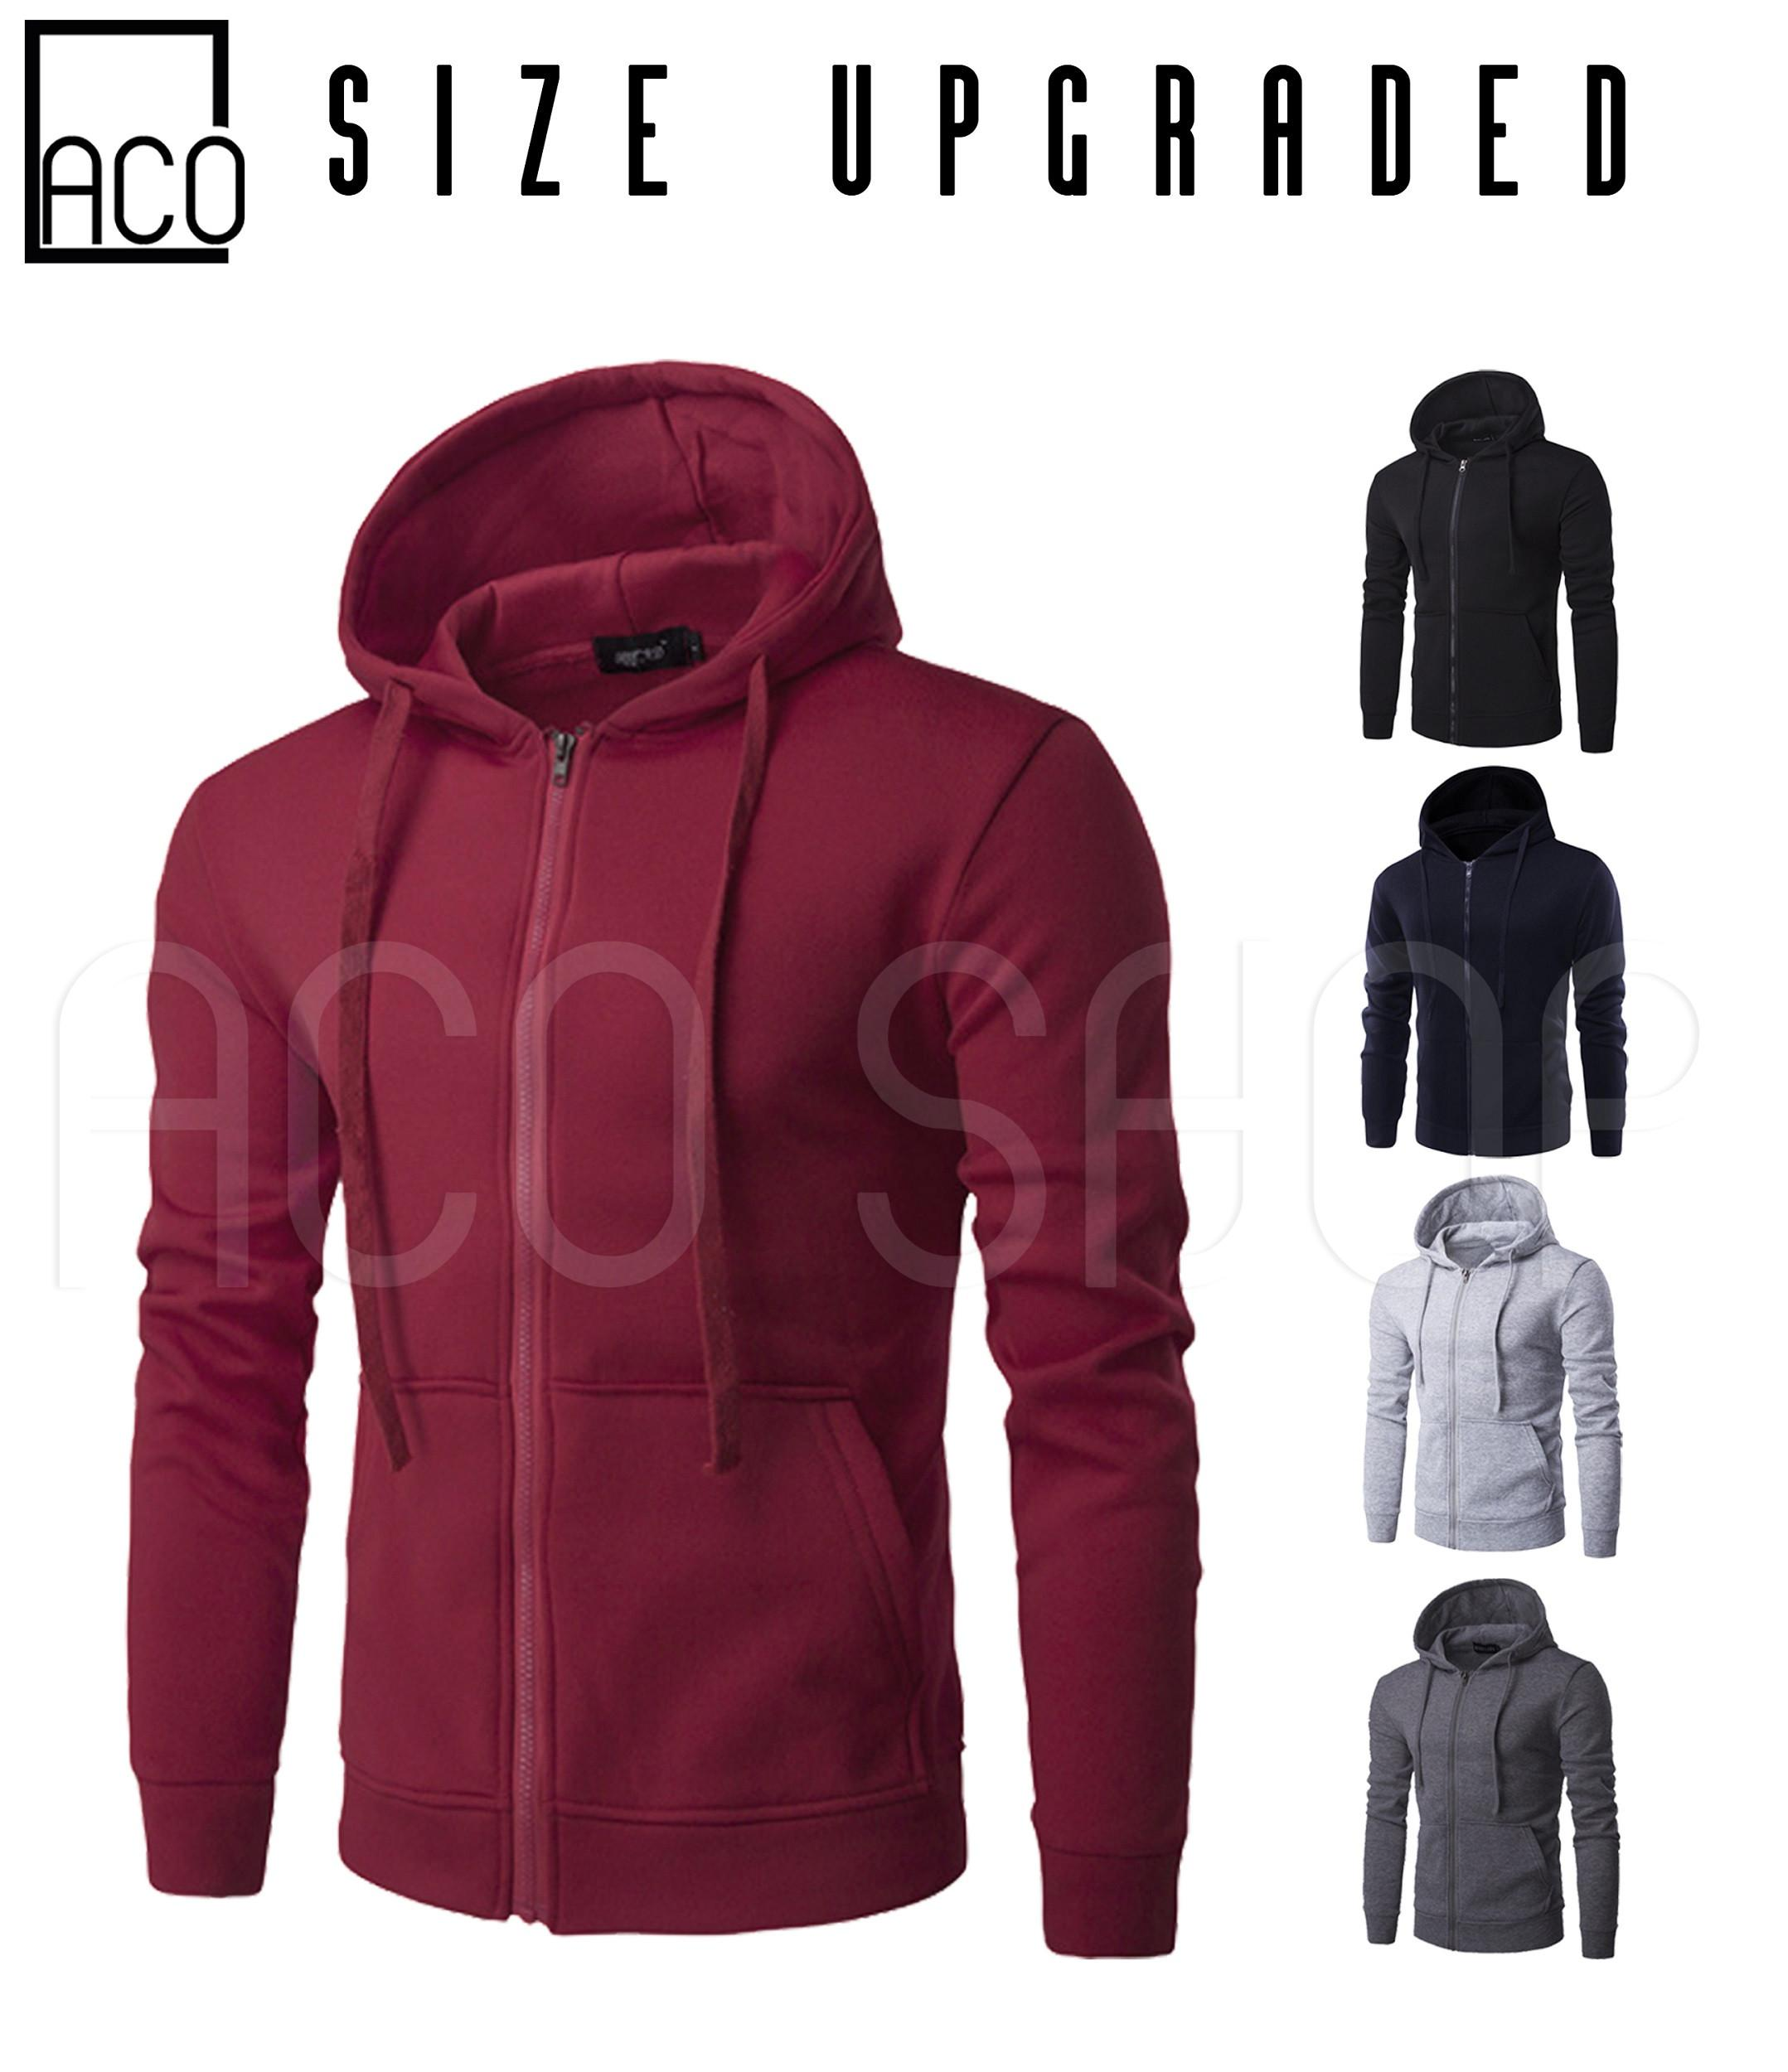 26430b850a1 Mens Hoodies for sale - Hoodie Jackets for Men online brands